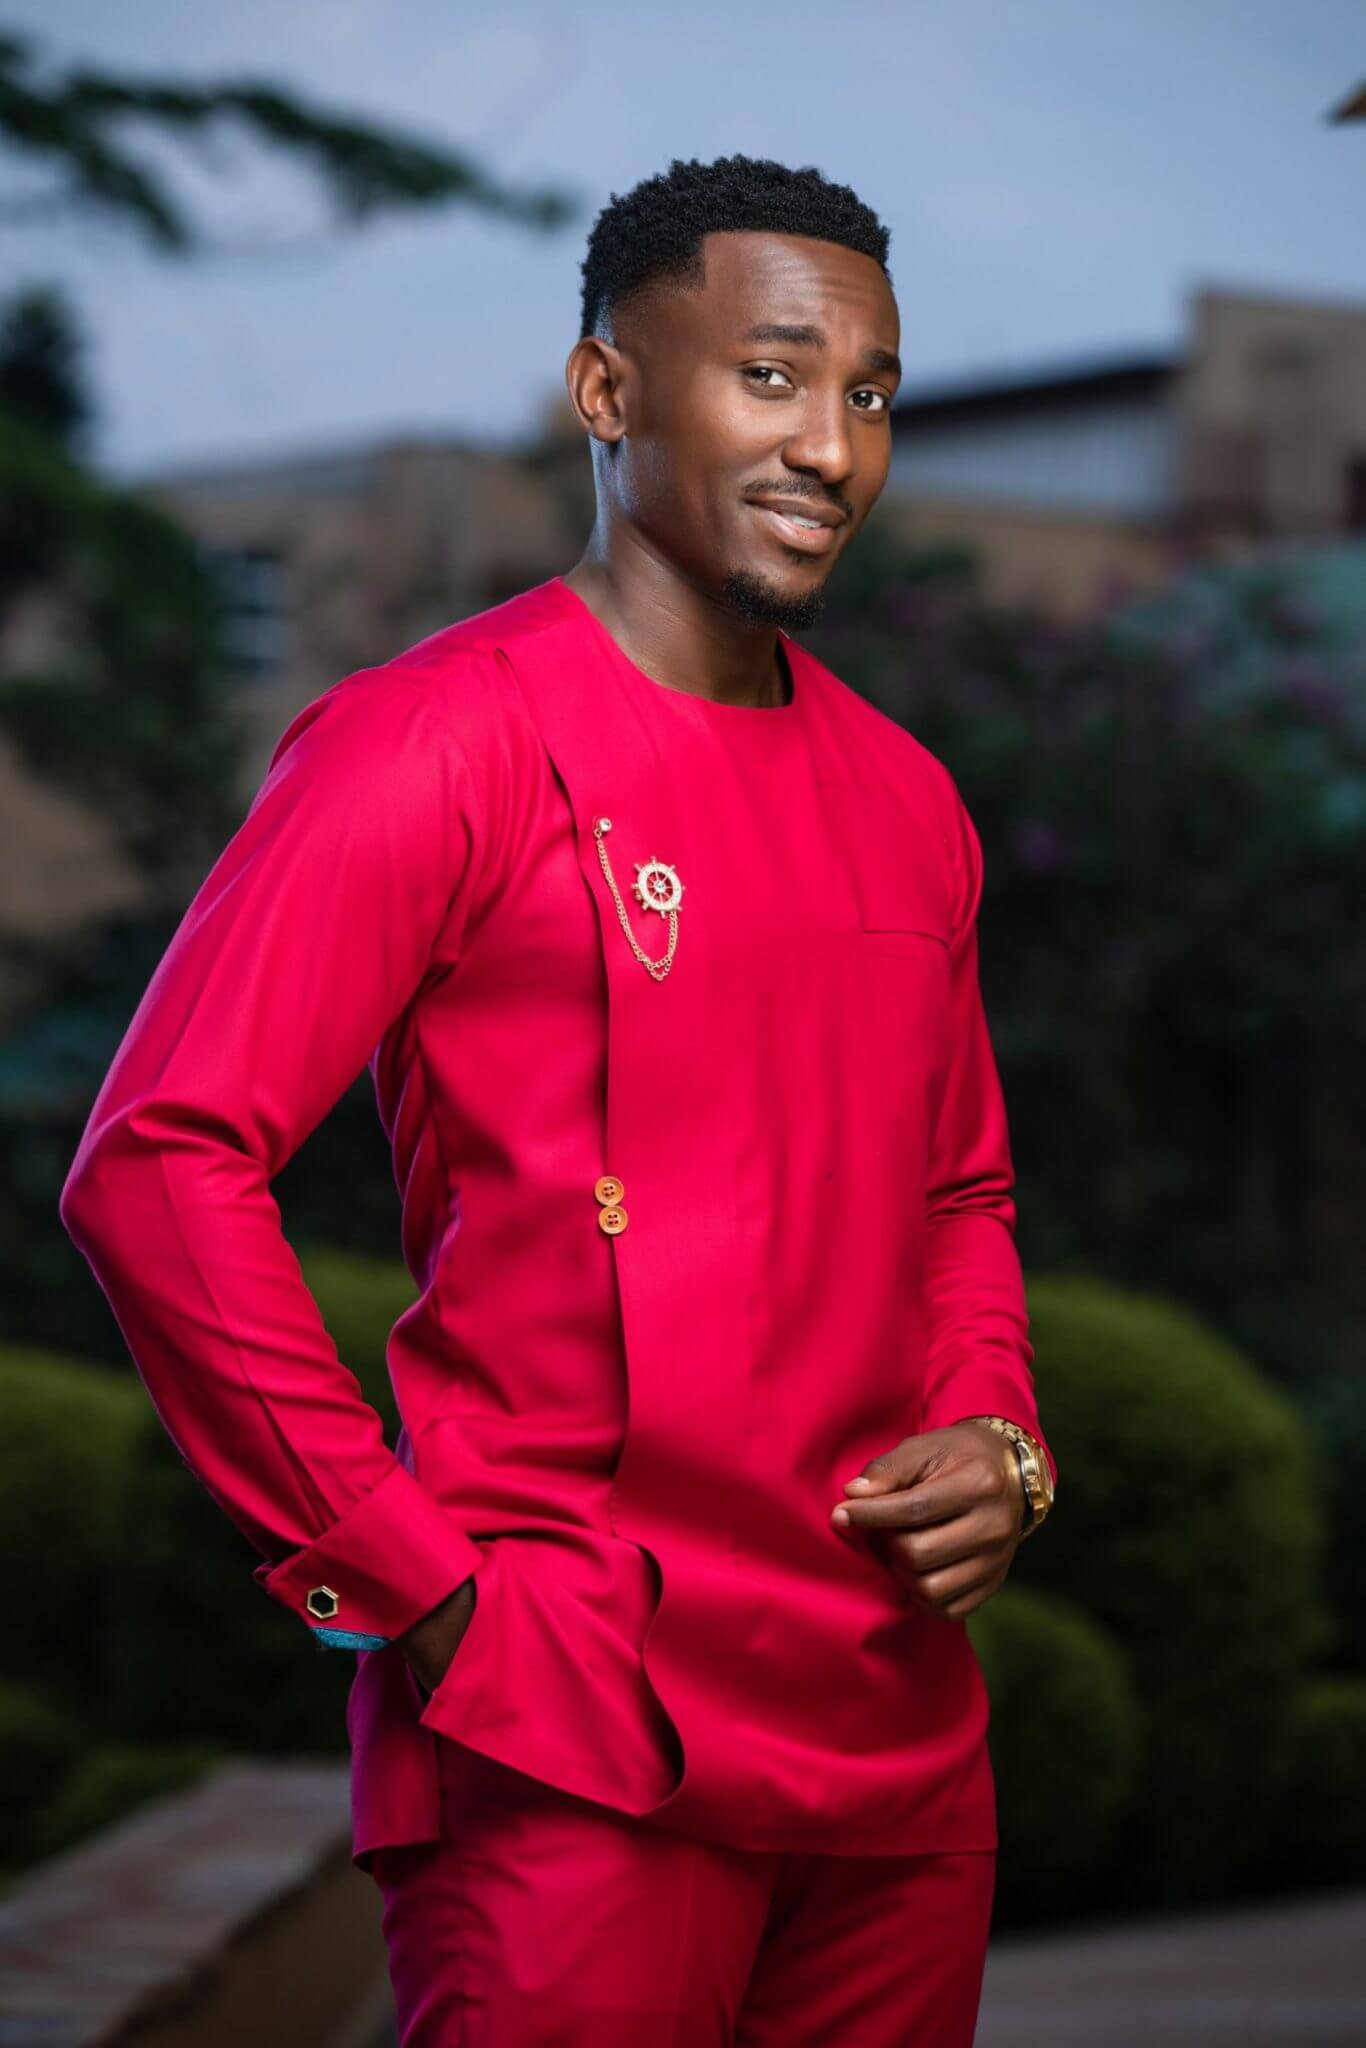 9Larry Casual Kampala Menswear scaled 1 scaled